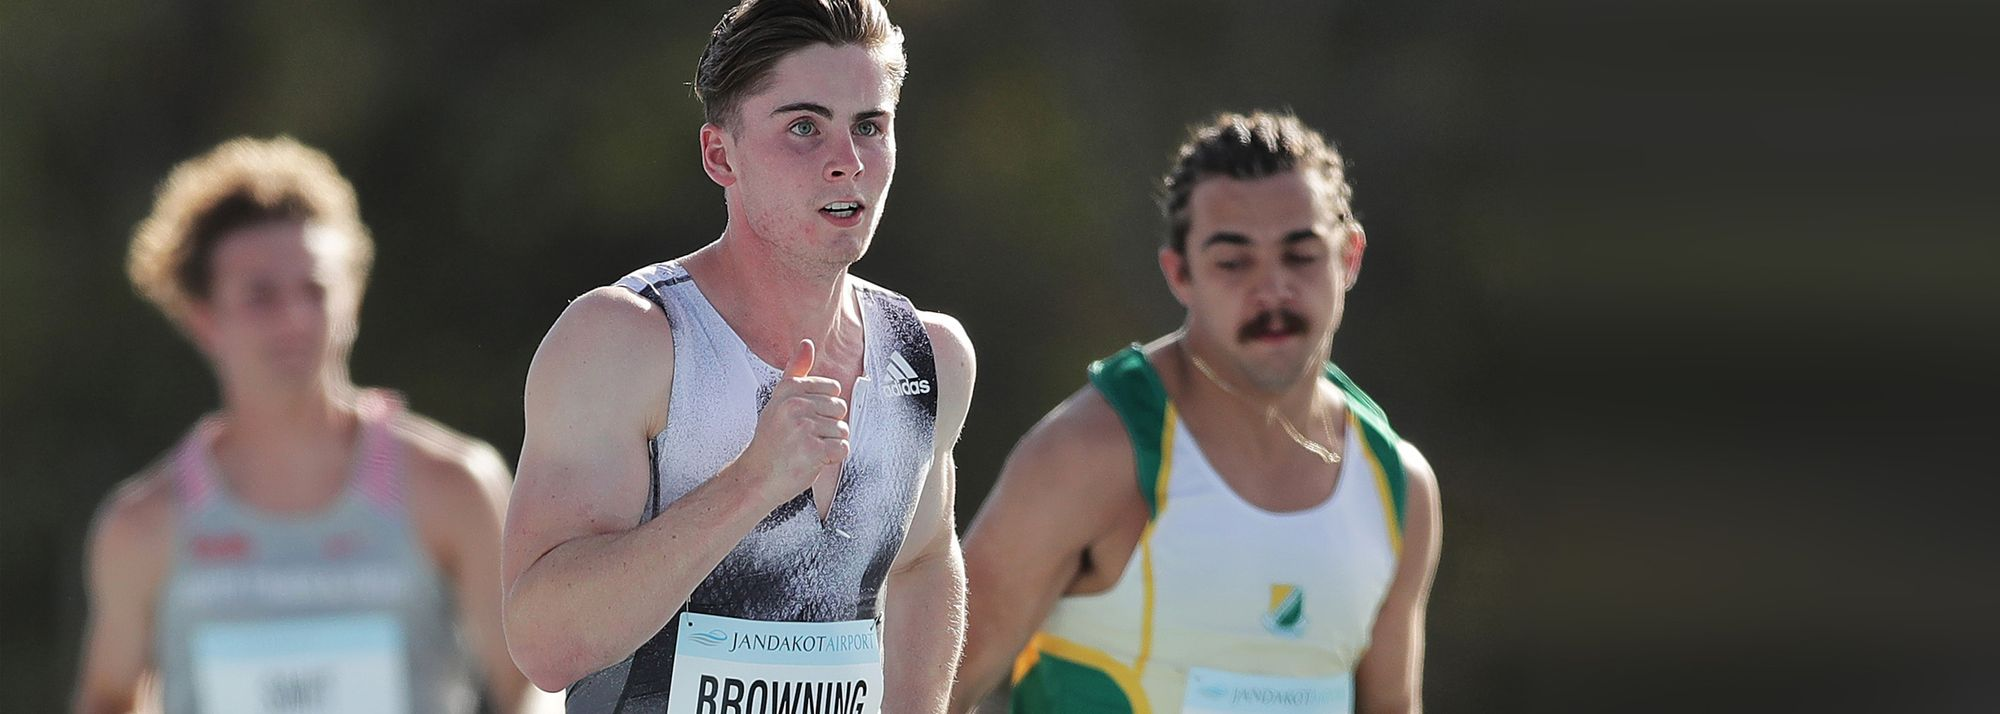 Rohan Browning sped to a wind-assisted 9.96 clocking over 100m at the Illawarra Track Challenge in Wollongong on Saturday (16), making him the second-fastest Australian over the distance in any conditions.